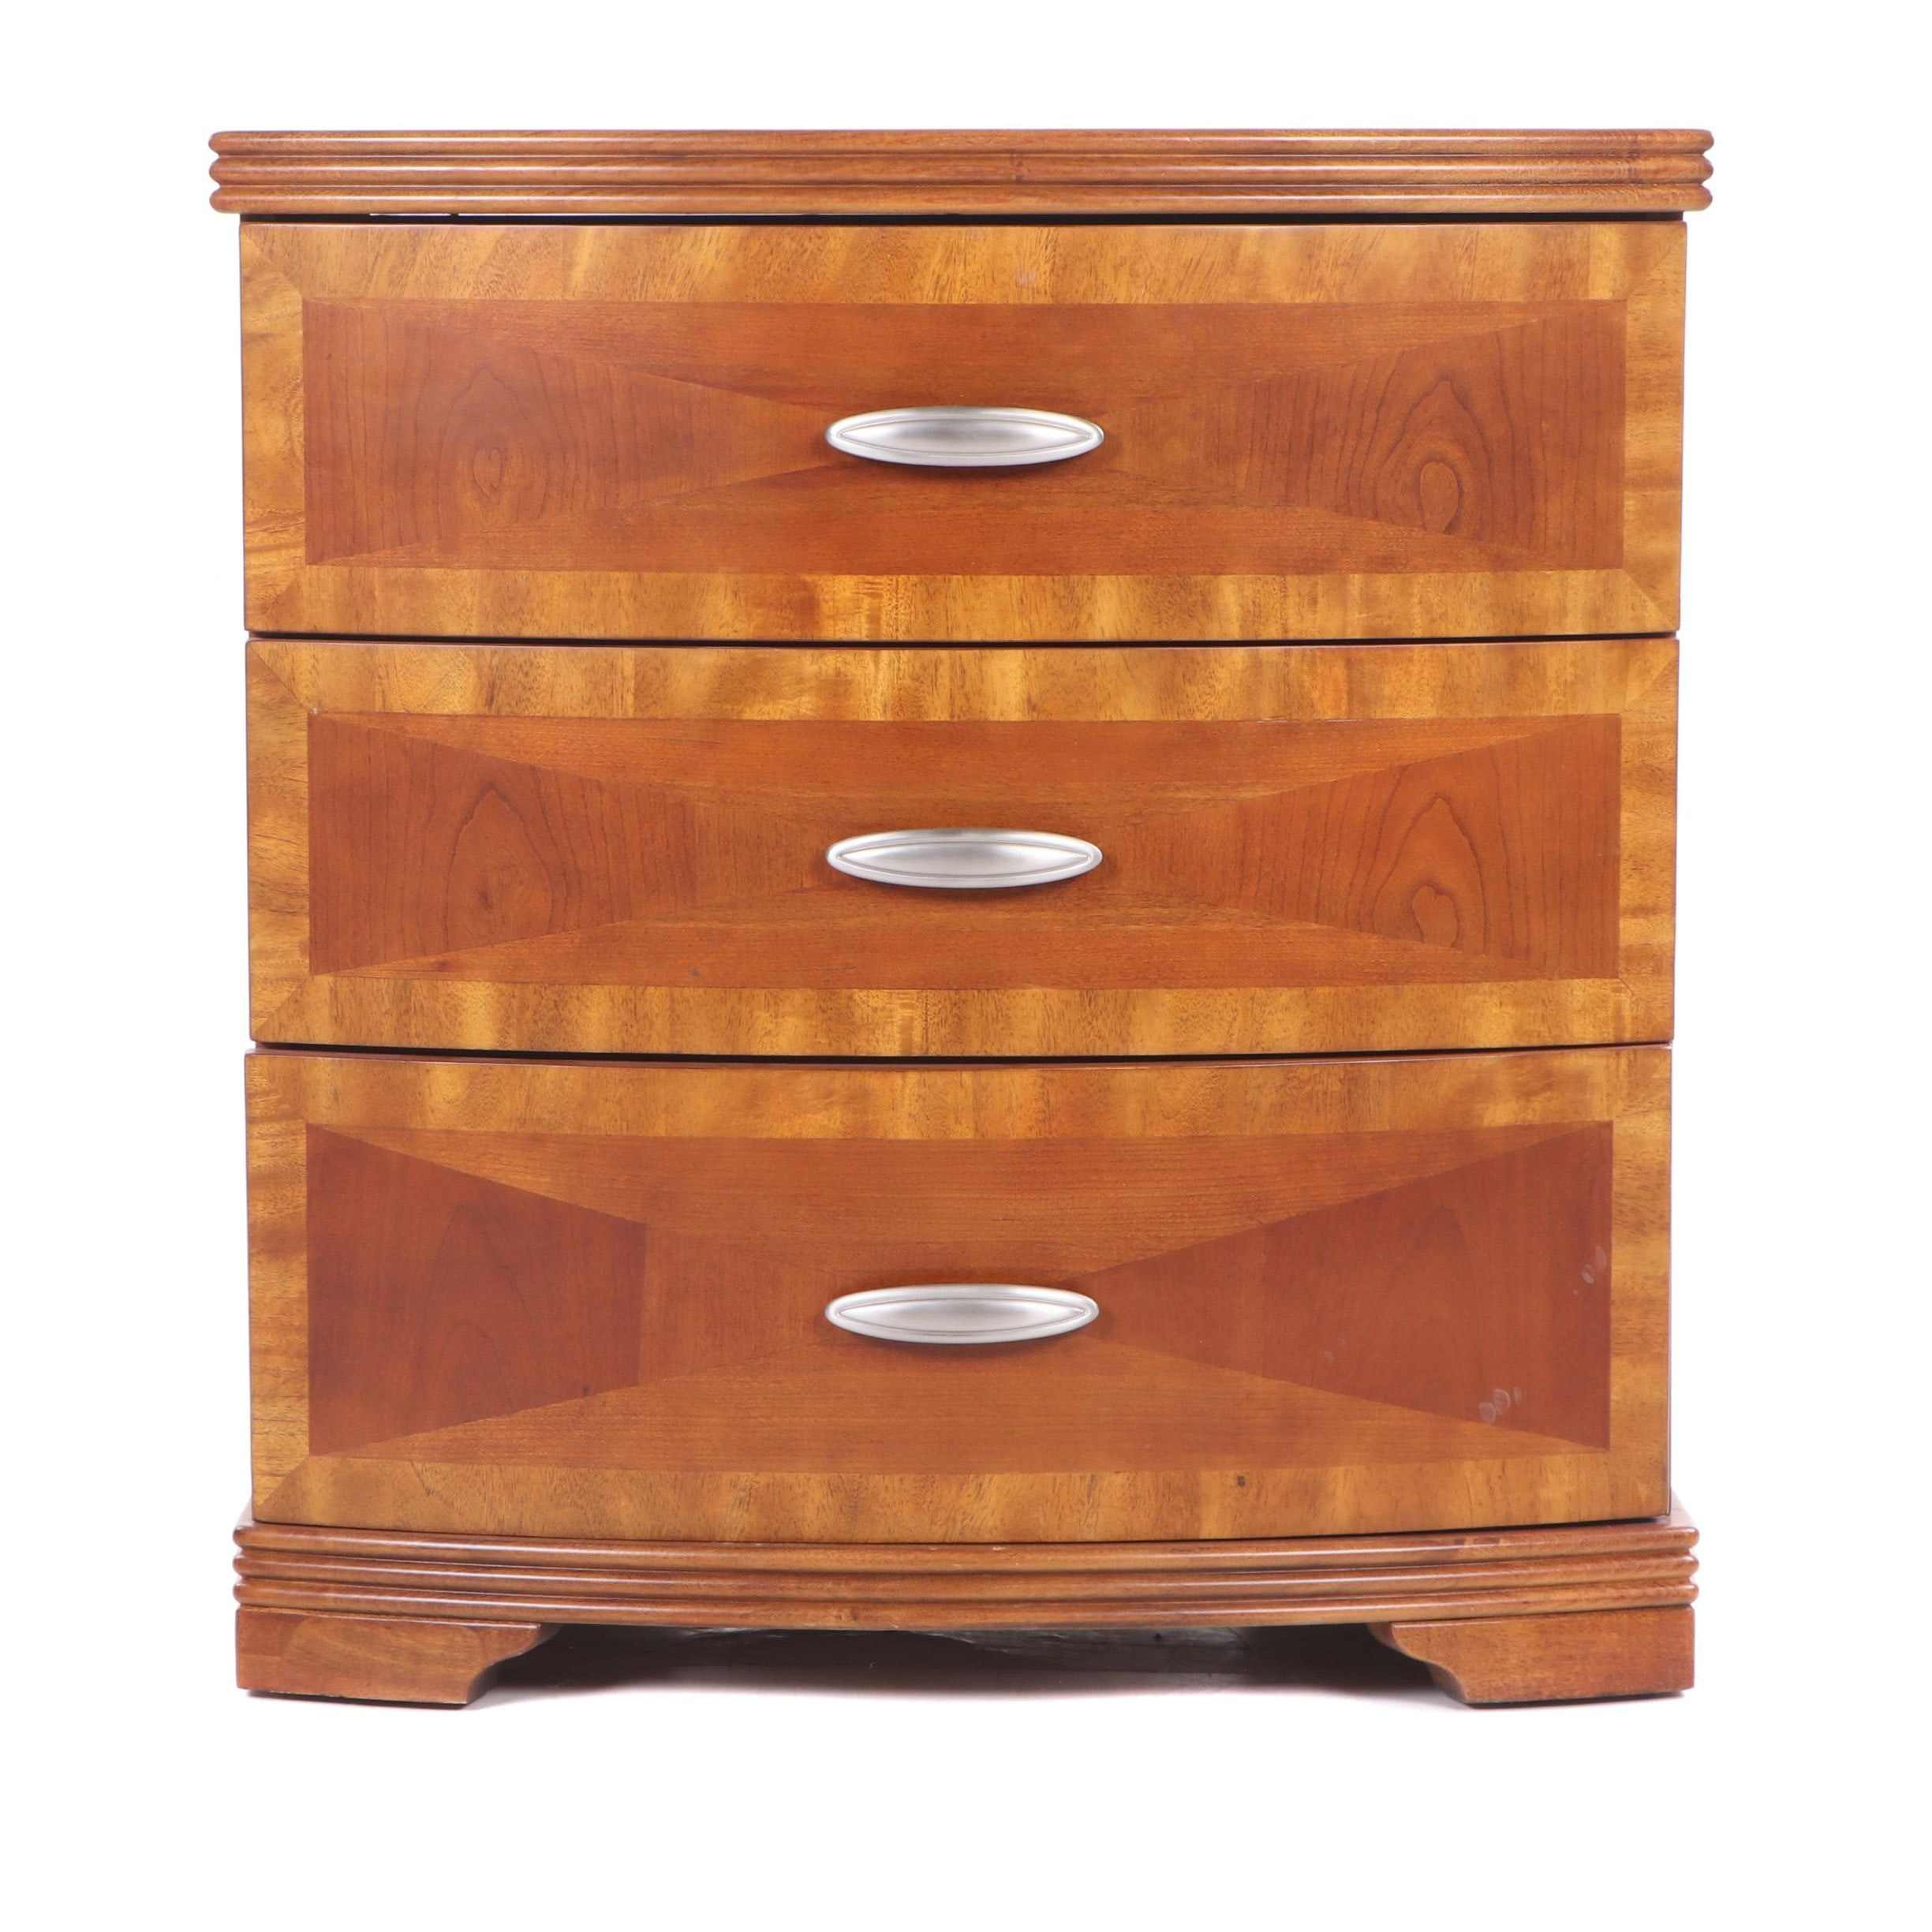 Contemporary Art Deco Style Wood Nightstand